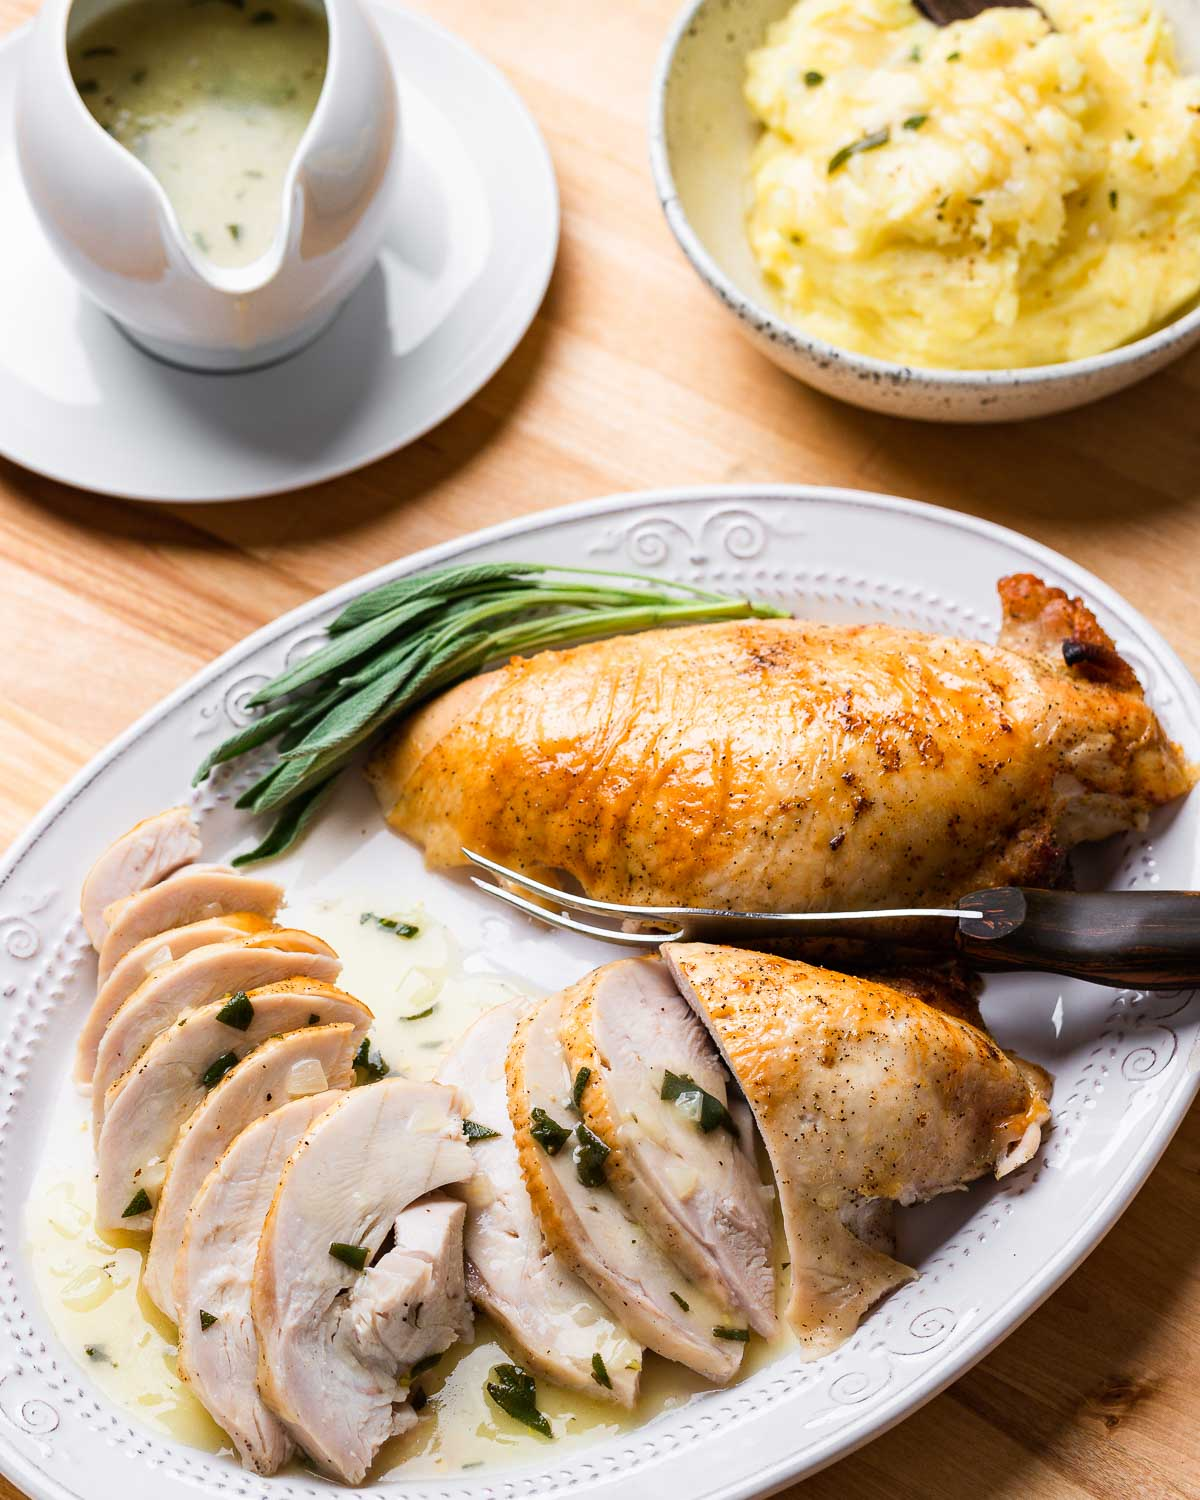 Platter with carved turkey breast, bowl of mashed potatoes, and gravy boat.